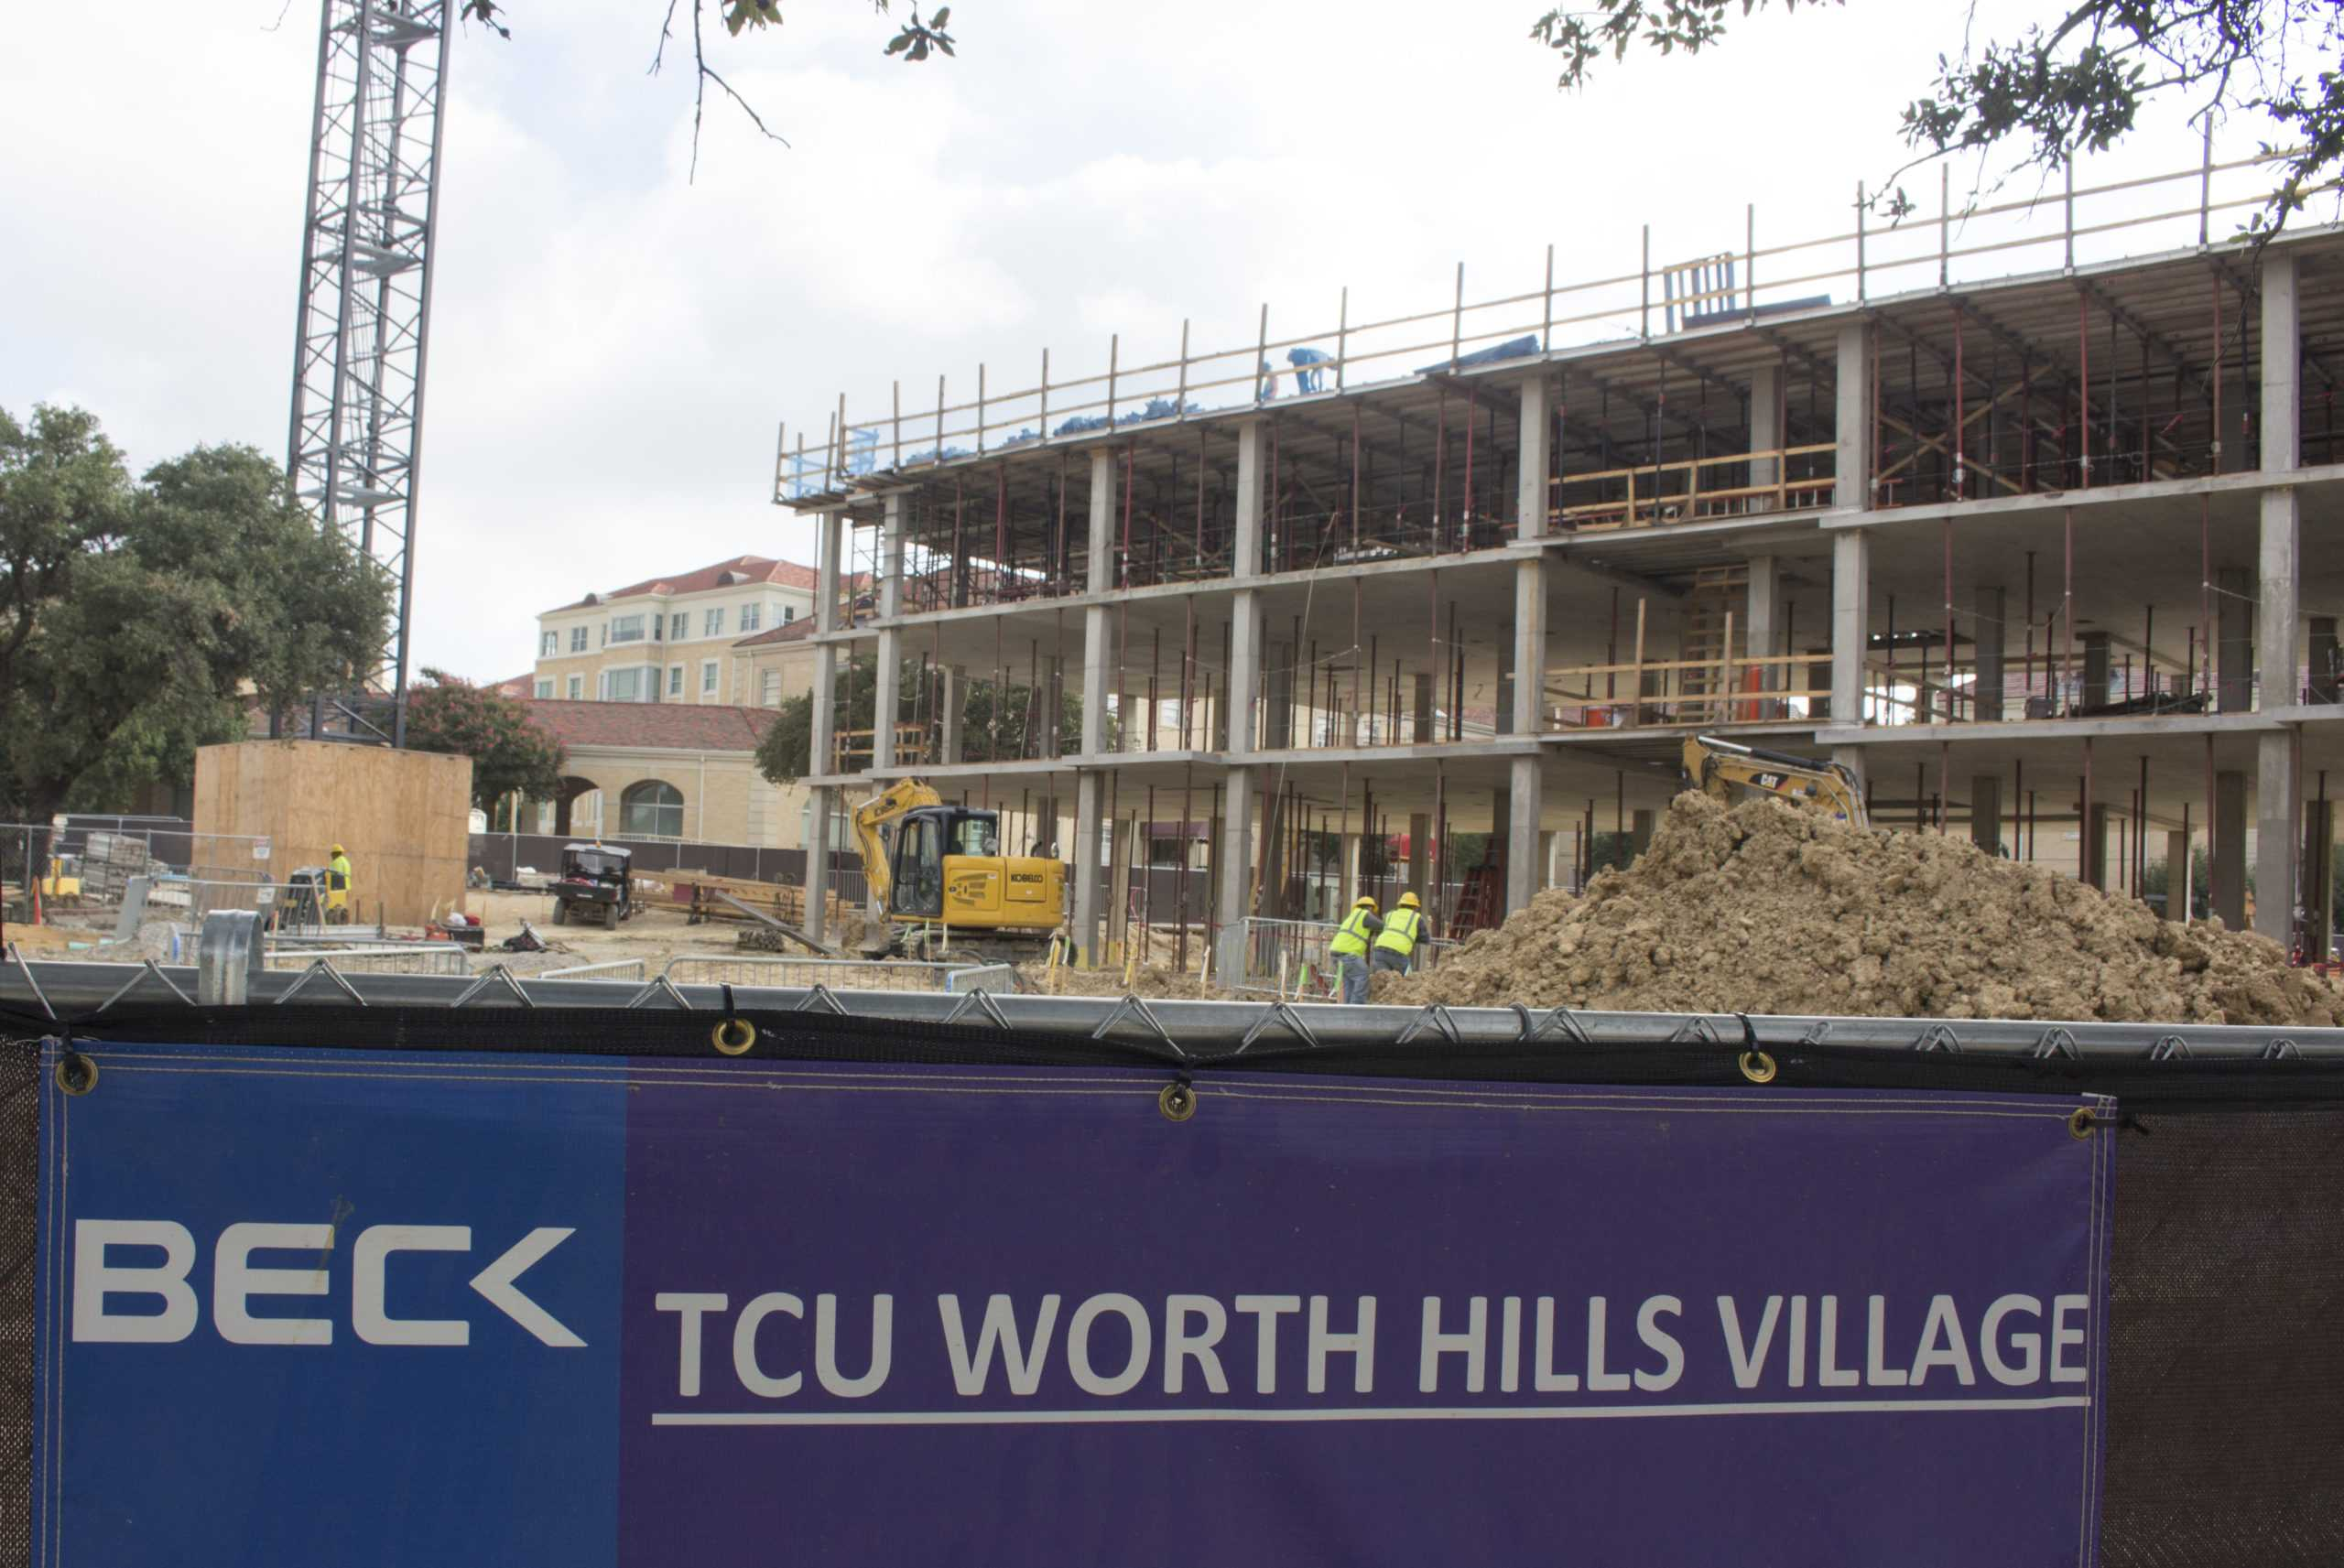 Move In Day Could Come Early To Greek Village